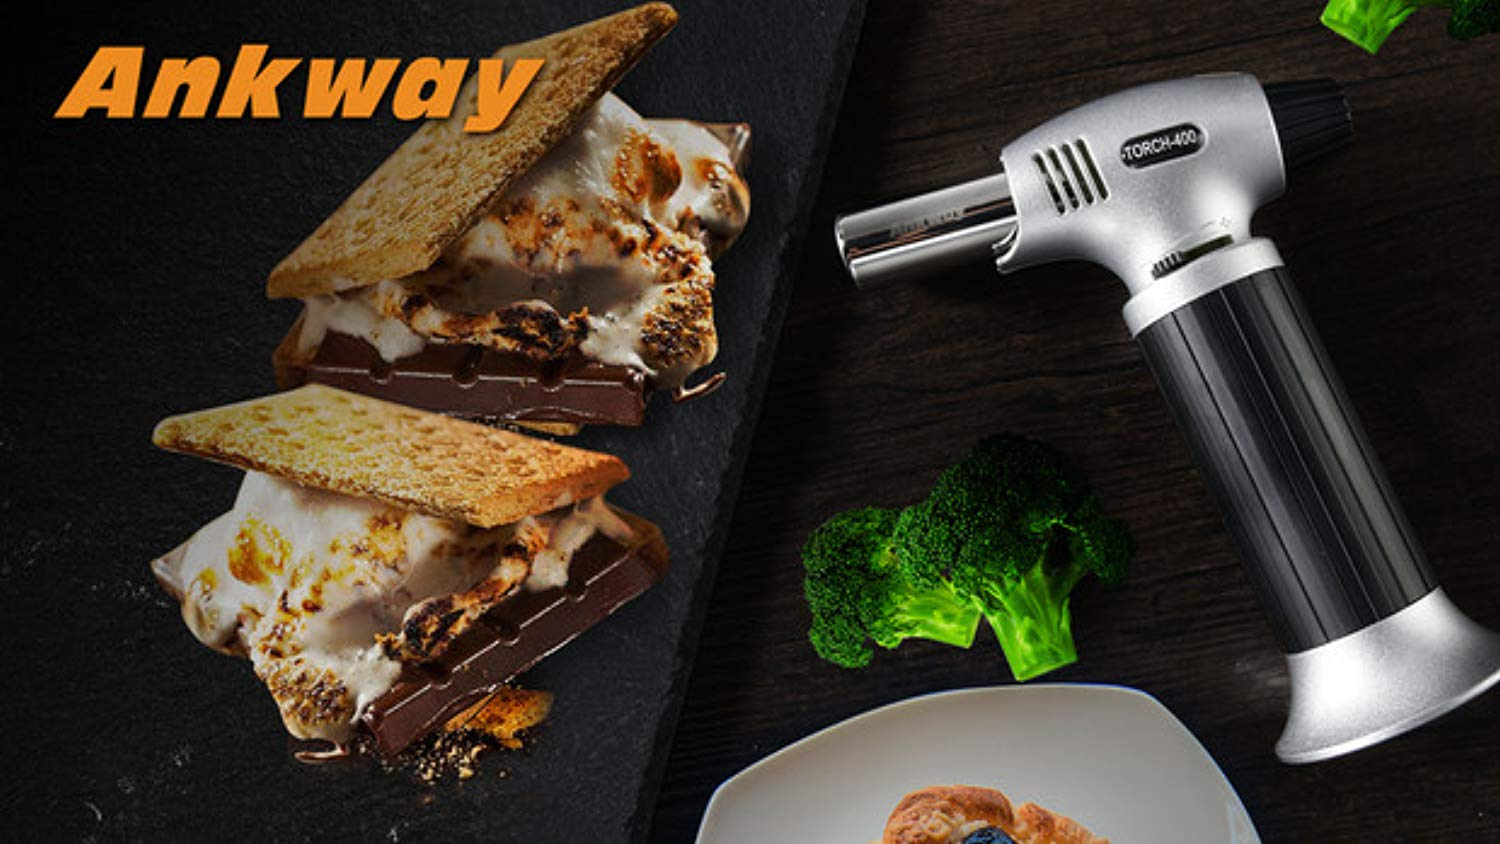 Ankway Culinary Butane Torch Lighter Refillable Kitchen Torch with Safety Lock & Adjustable Flame Food Torch Blow Torch for Creme Brulee, Cooking, Baking, DIY, Soldering, Welding, Searing, MAX 2500°F